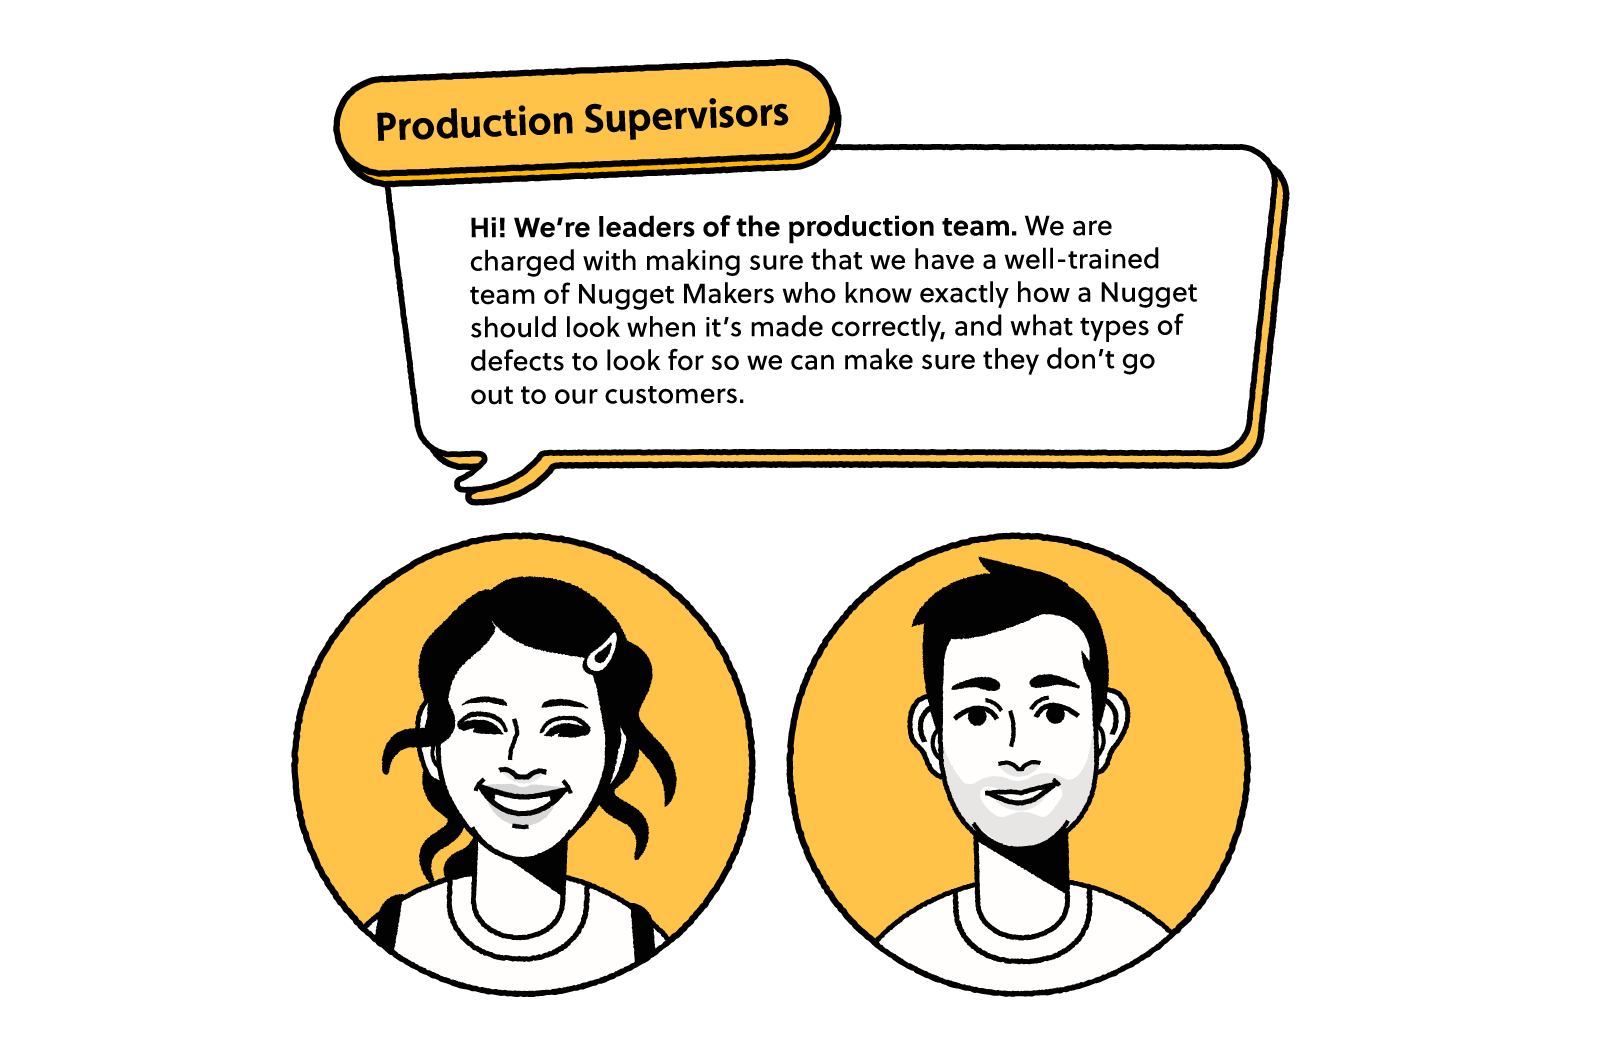 Production Supervisors